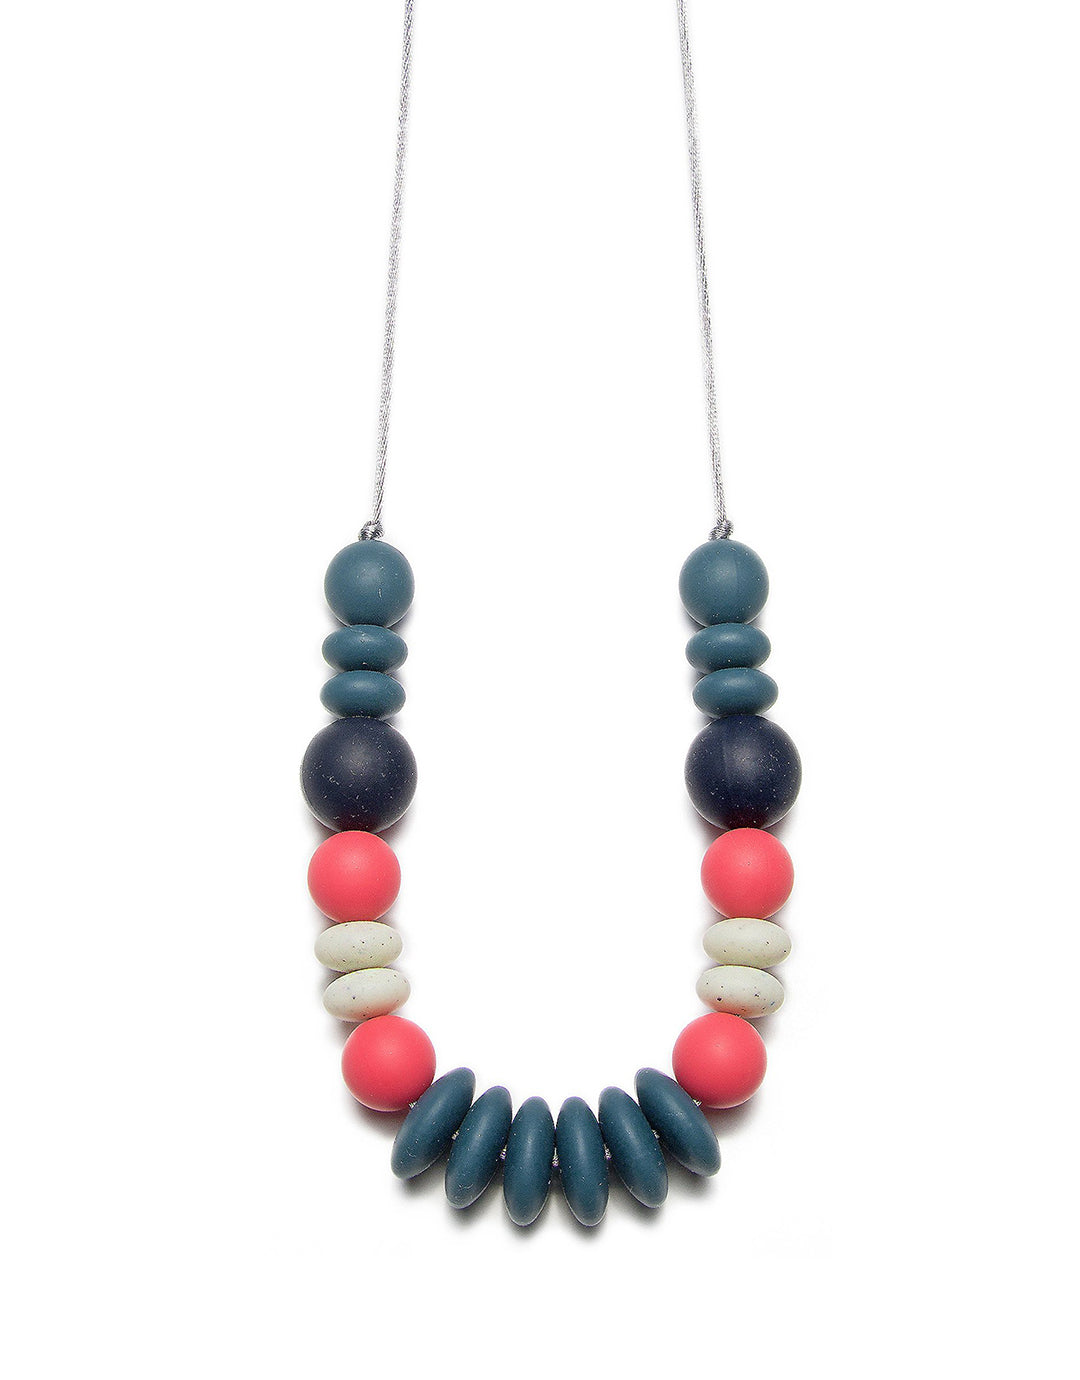 BANDED Baby Accessories + Apparel - Woodland Berries - Teething Necklace